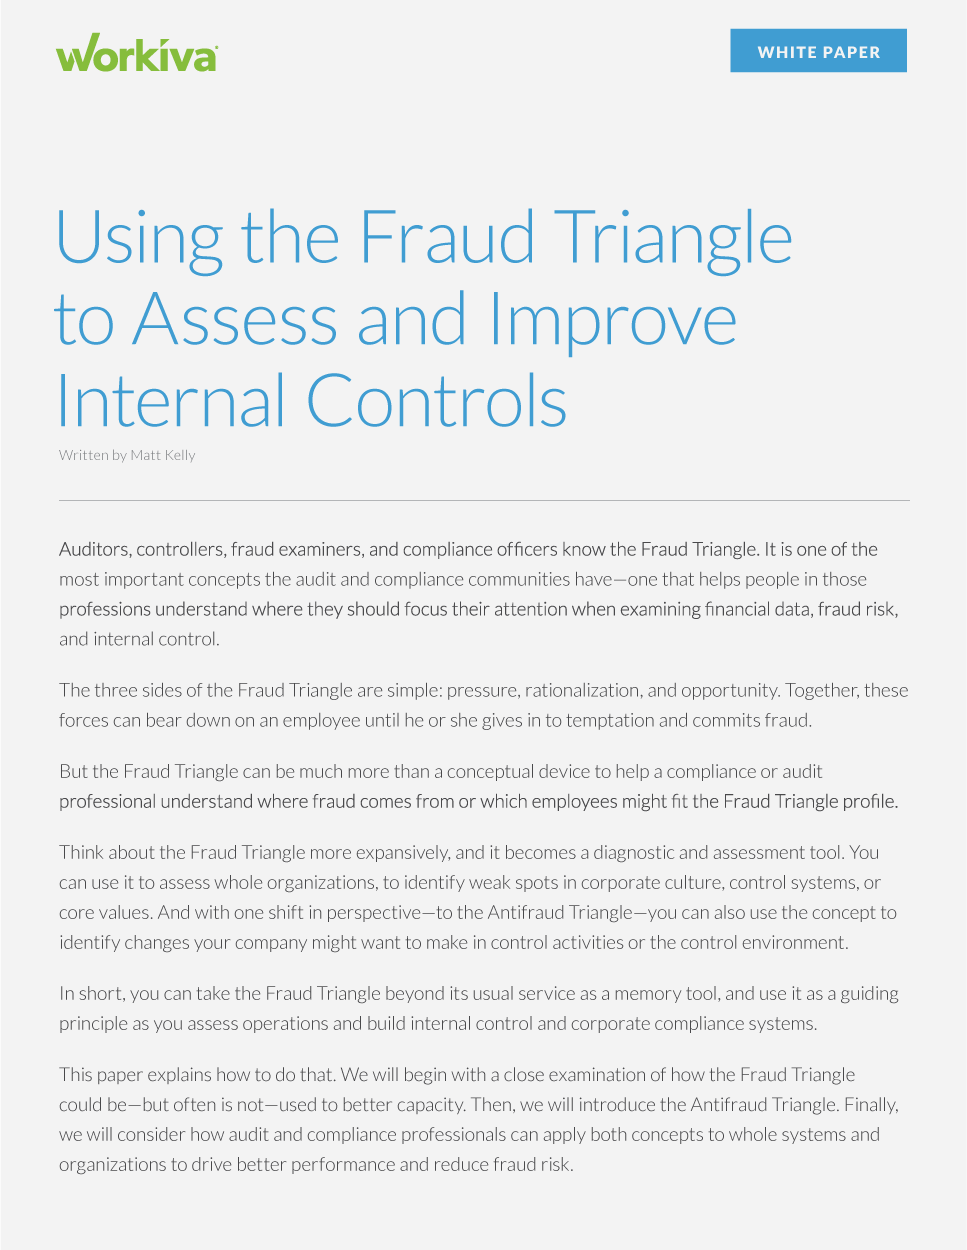 Using the Fraud Triangle to Assess and Improve Internal Controls